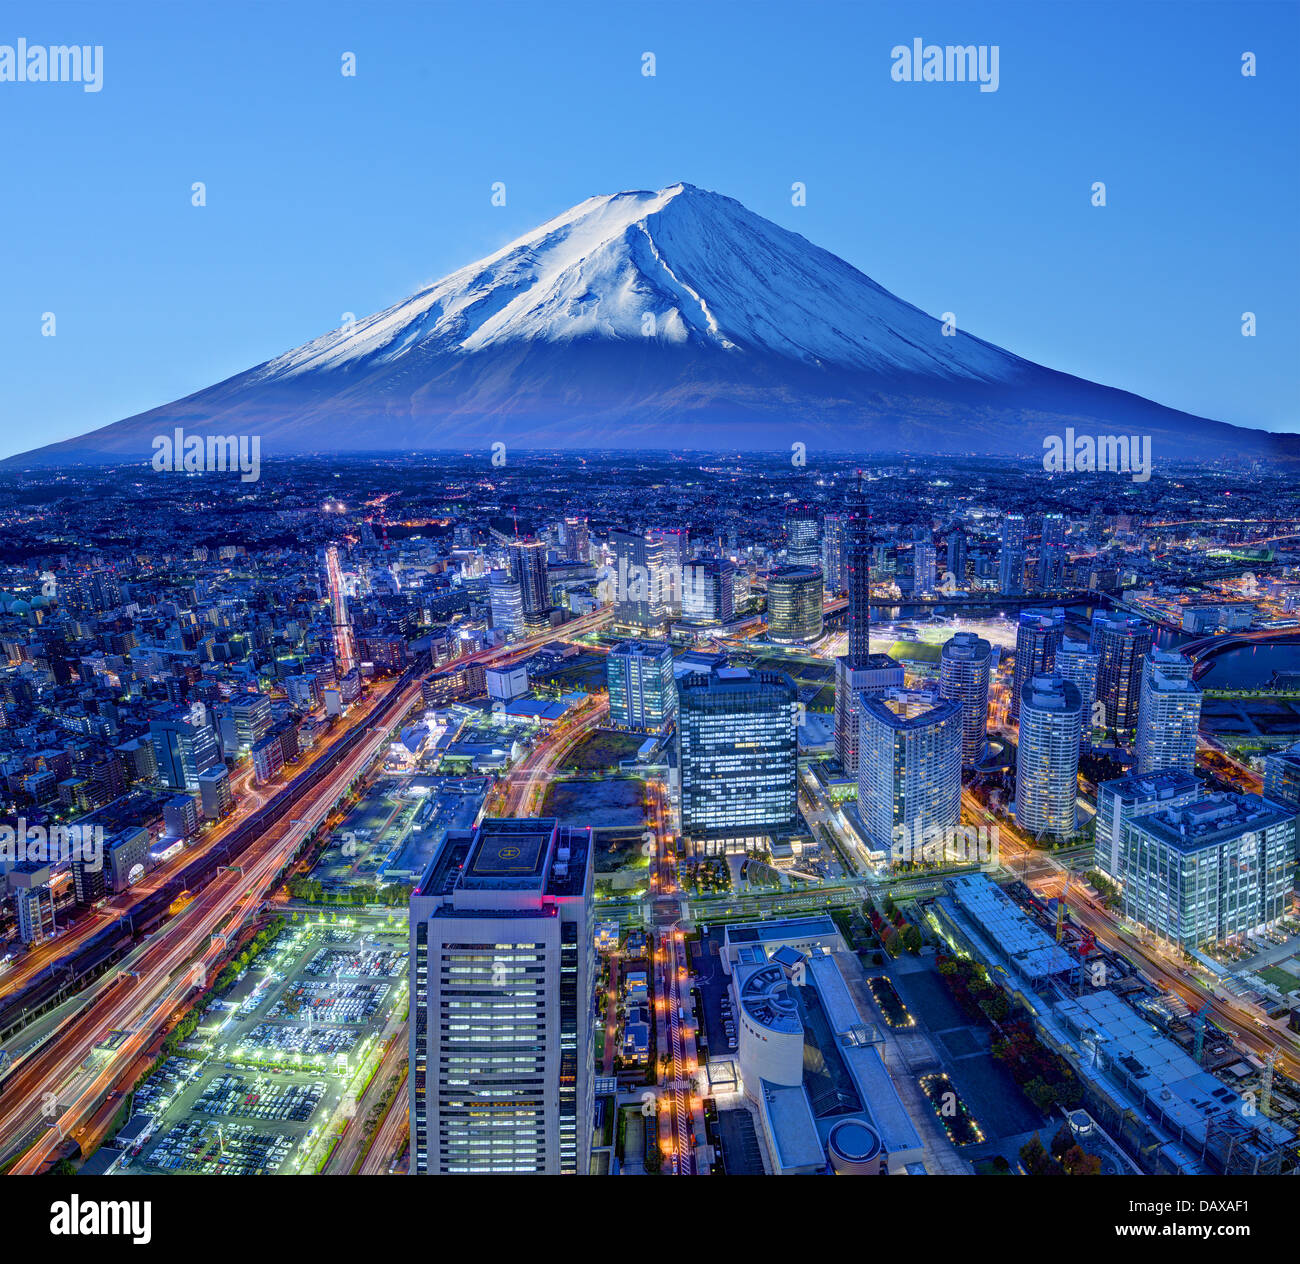 Skyline of Mt. Fuji and Yokohama, Japan. - Stock Image